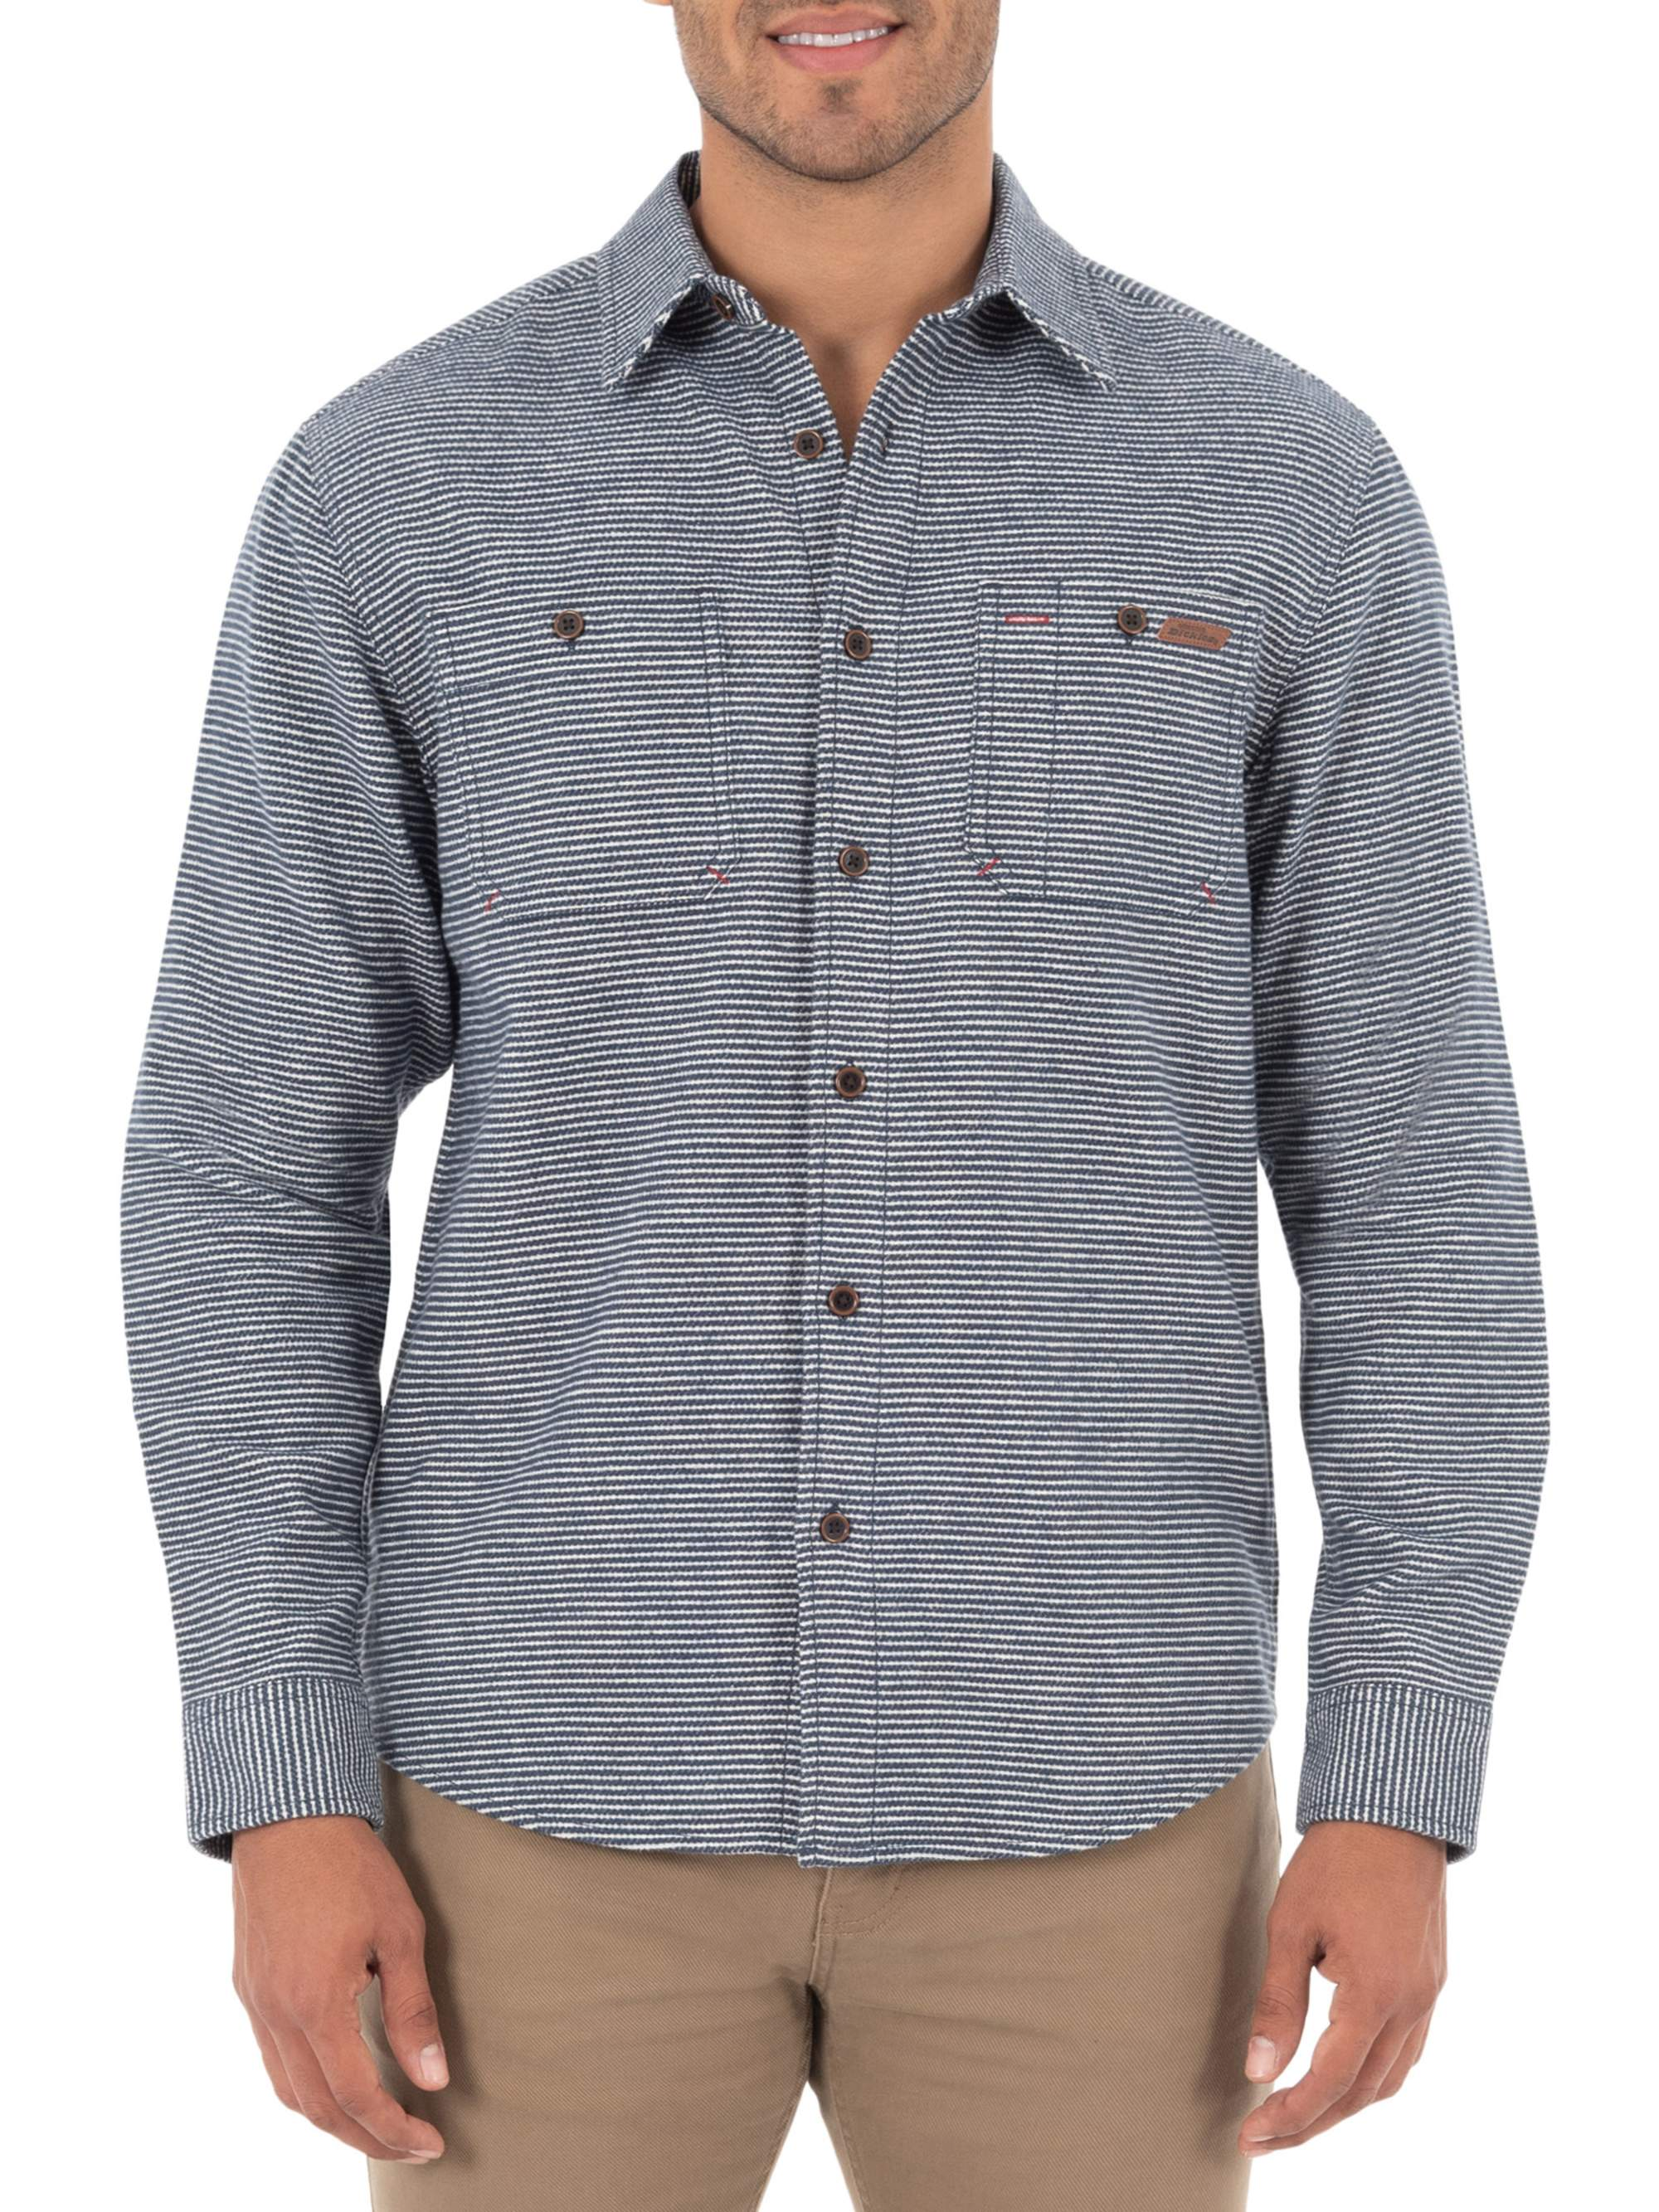 Dark Smoke Relaxed Fit Dickies Woven Shirt